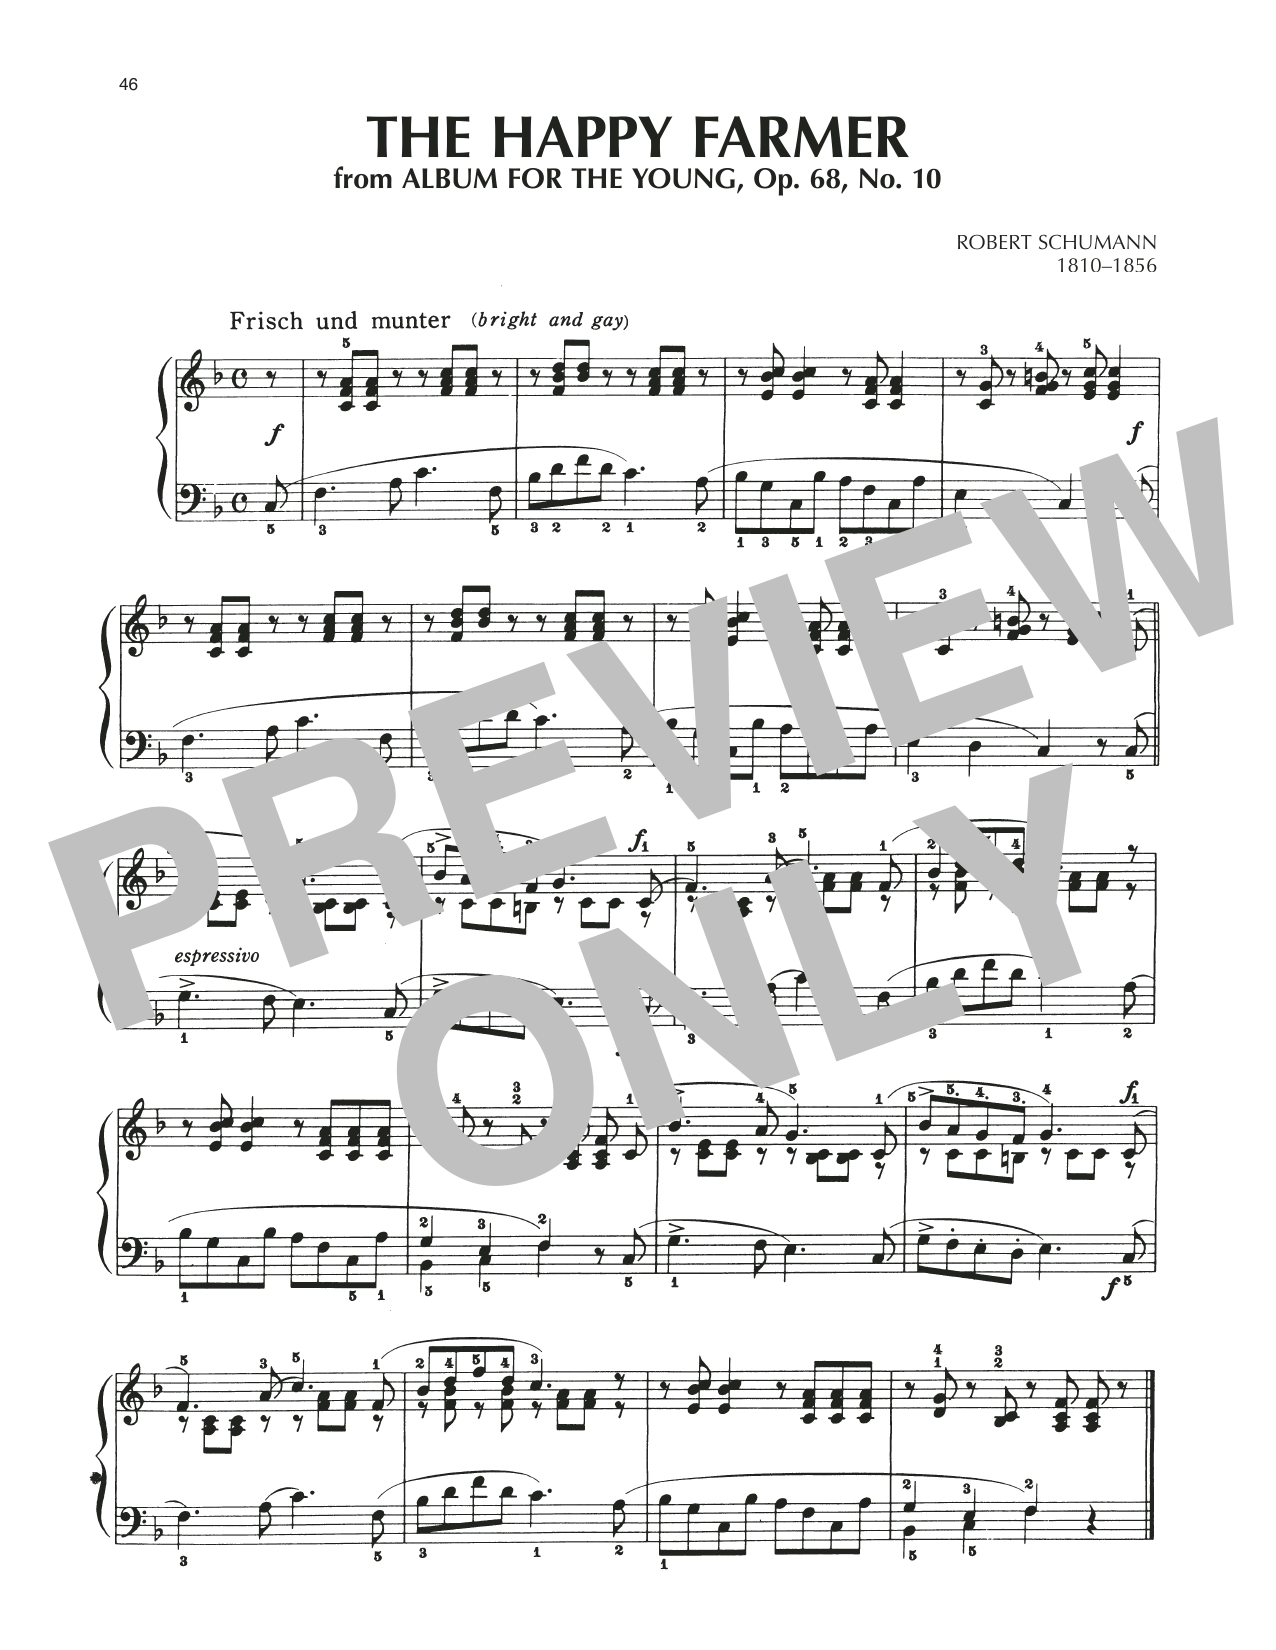 The Happy Farmer Returning From Work, Op. 68, No. 10 Sheet Music